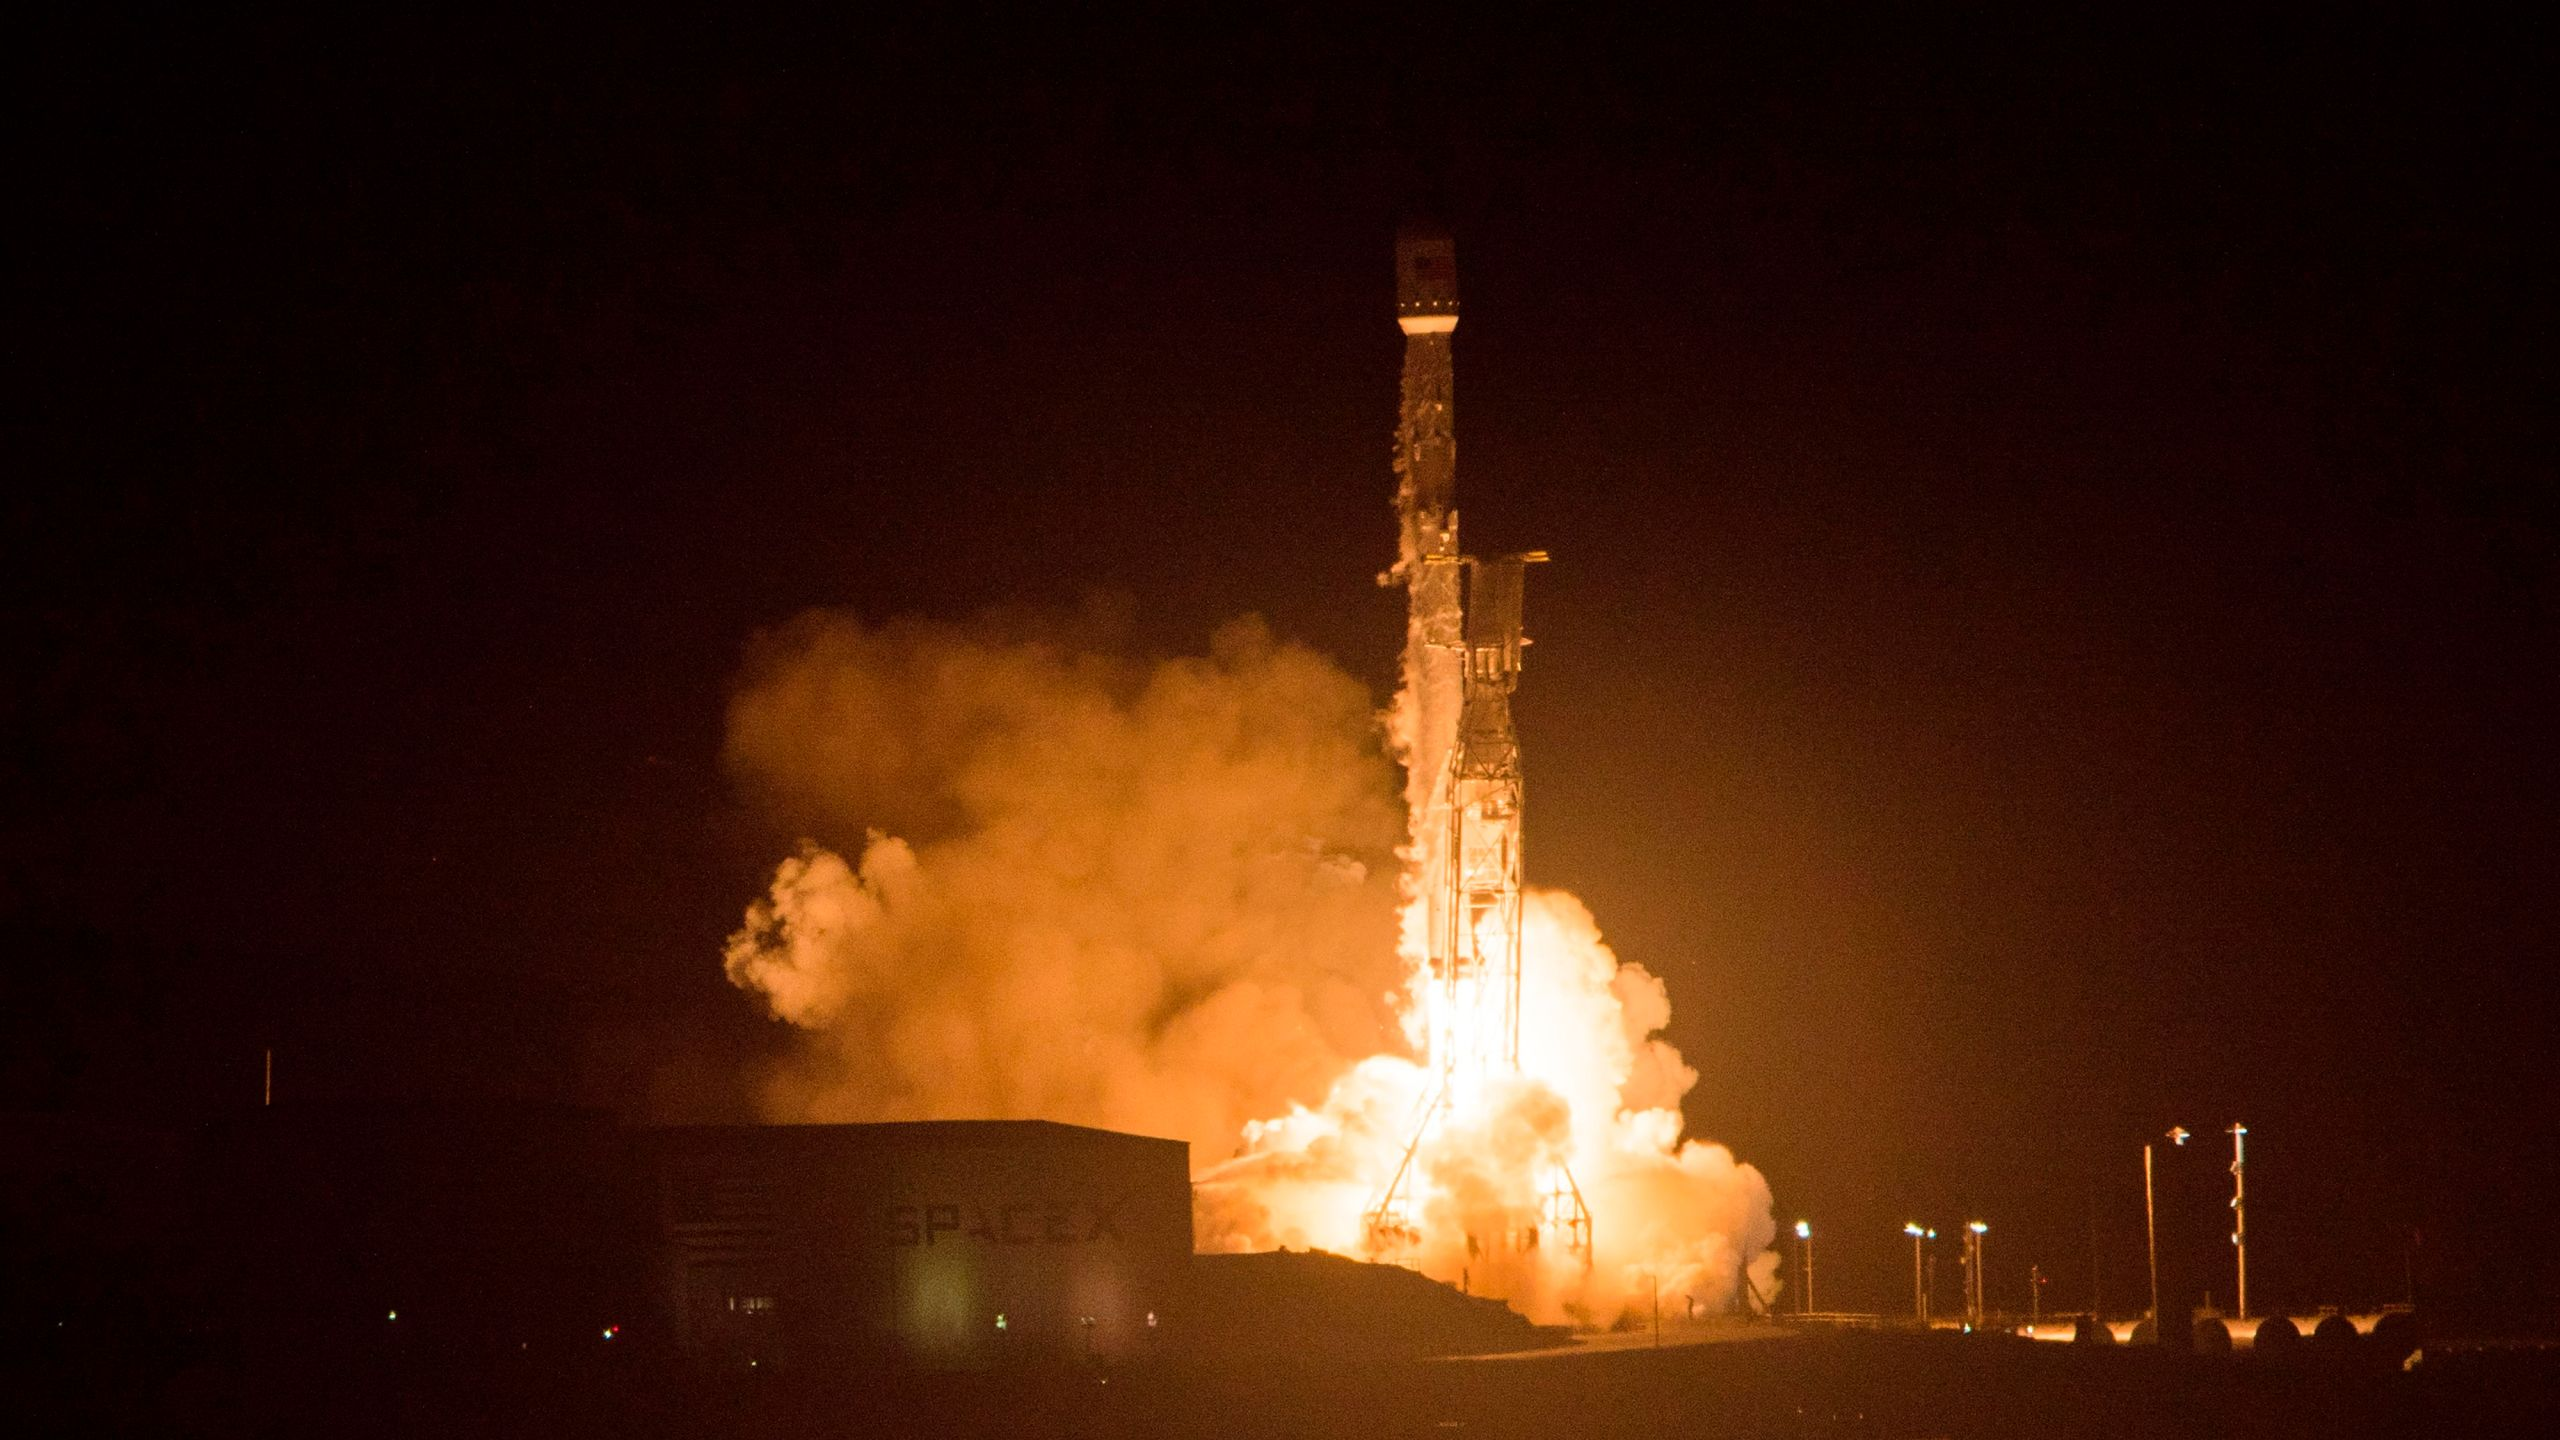 The SpaceX Falcon 9 rocket launches from Vandenberg Air Force Base in Lompoc on Dec. 22, 2017. (Credit: Robyn Beck / AFP / Getty Images)